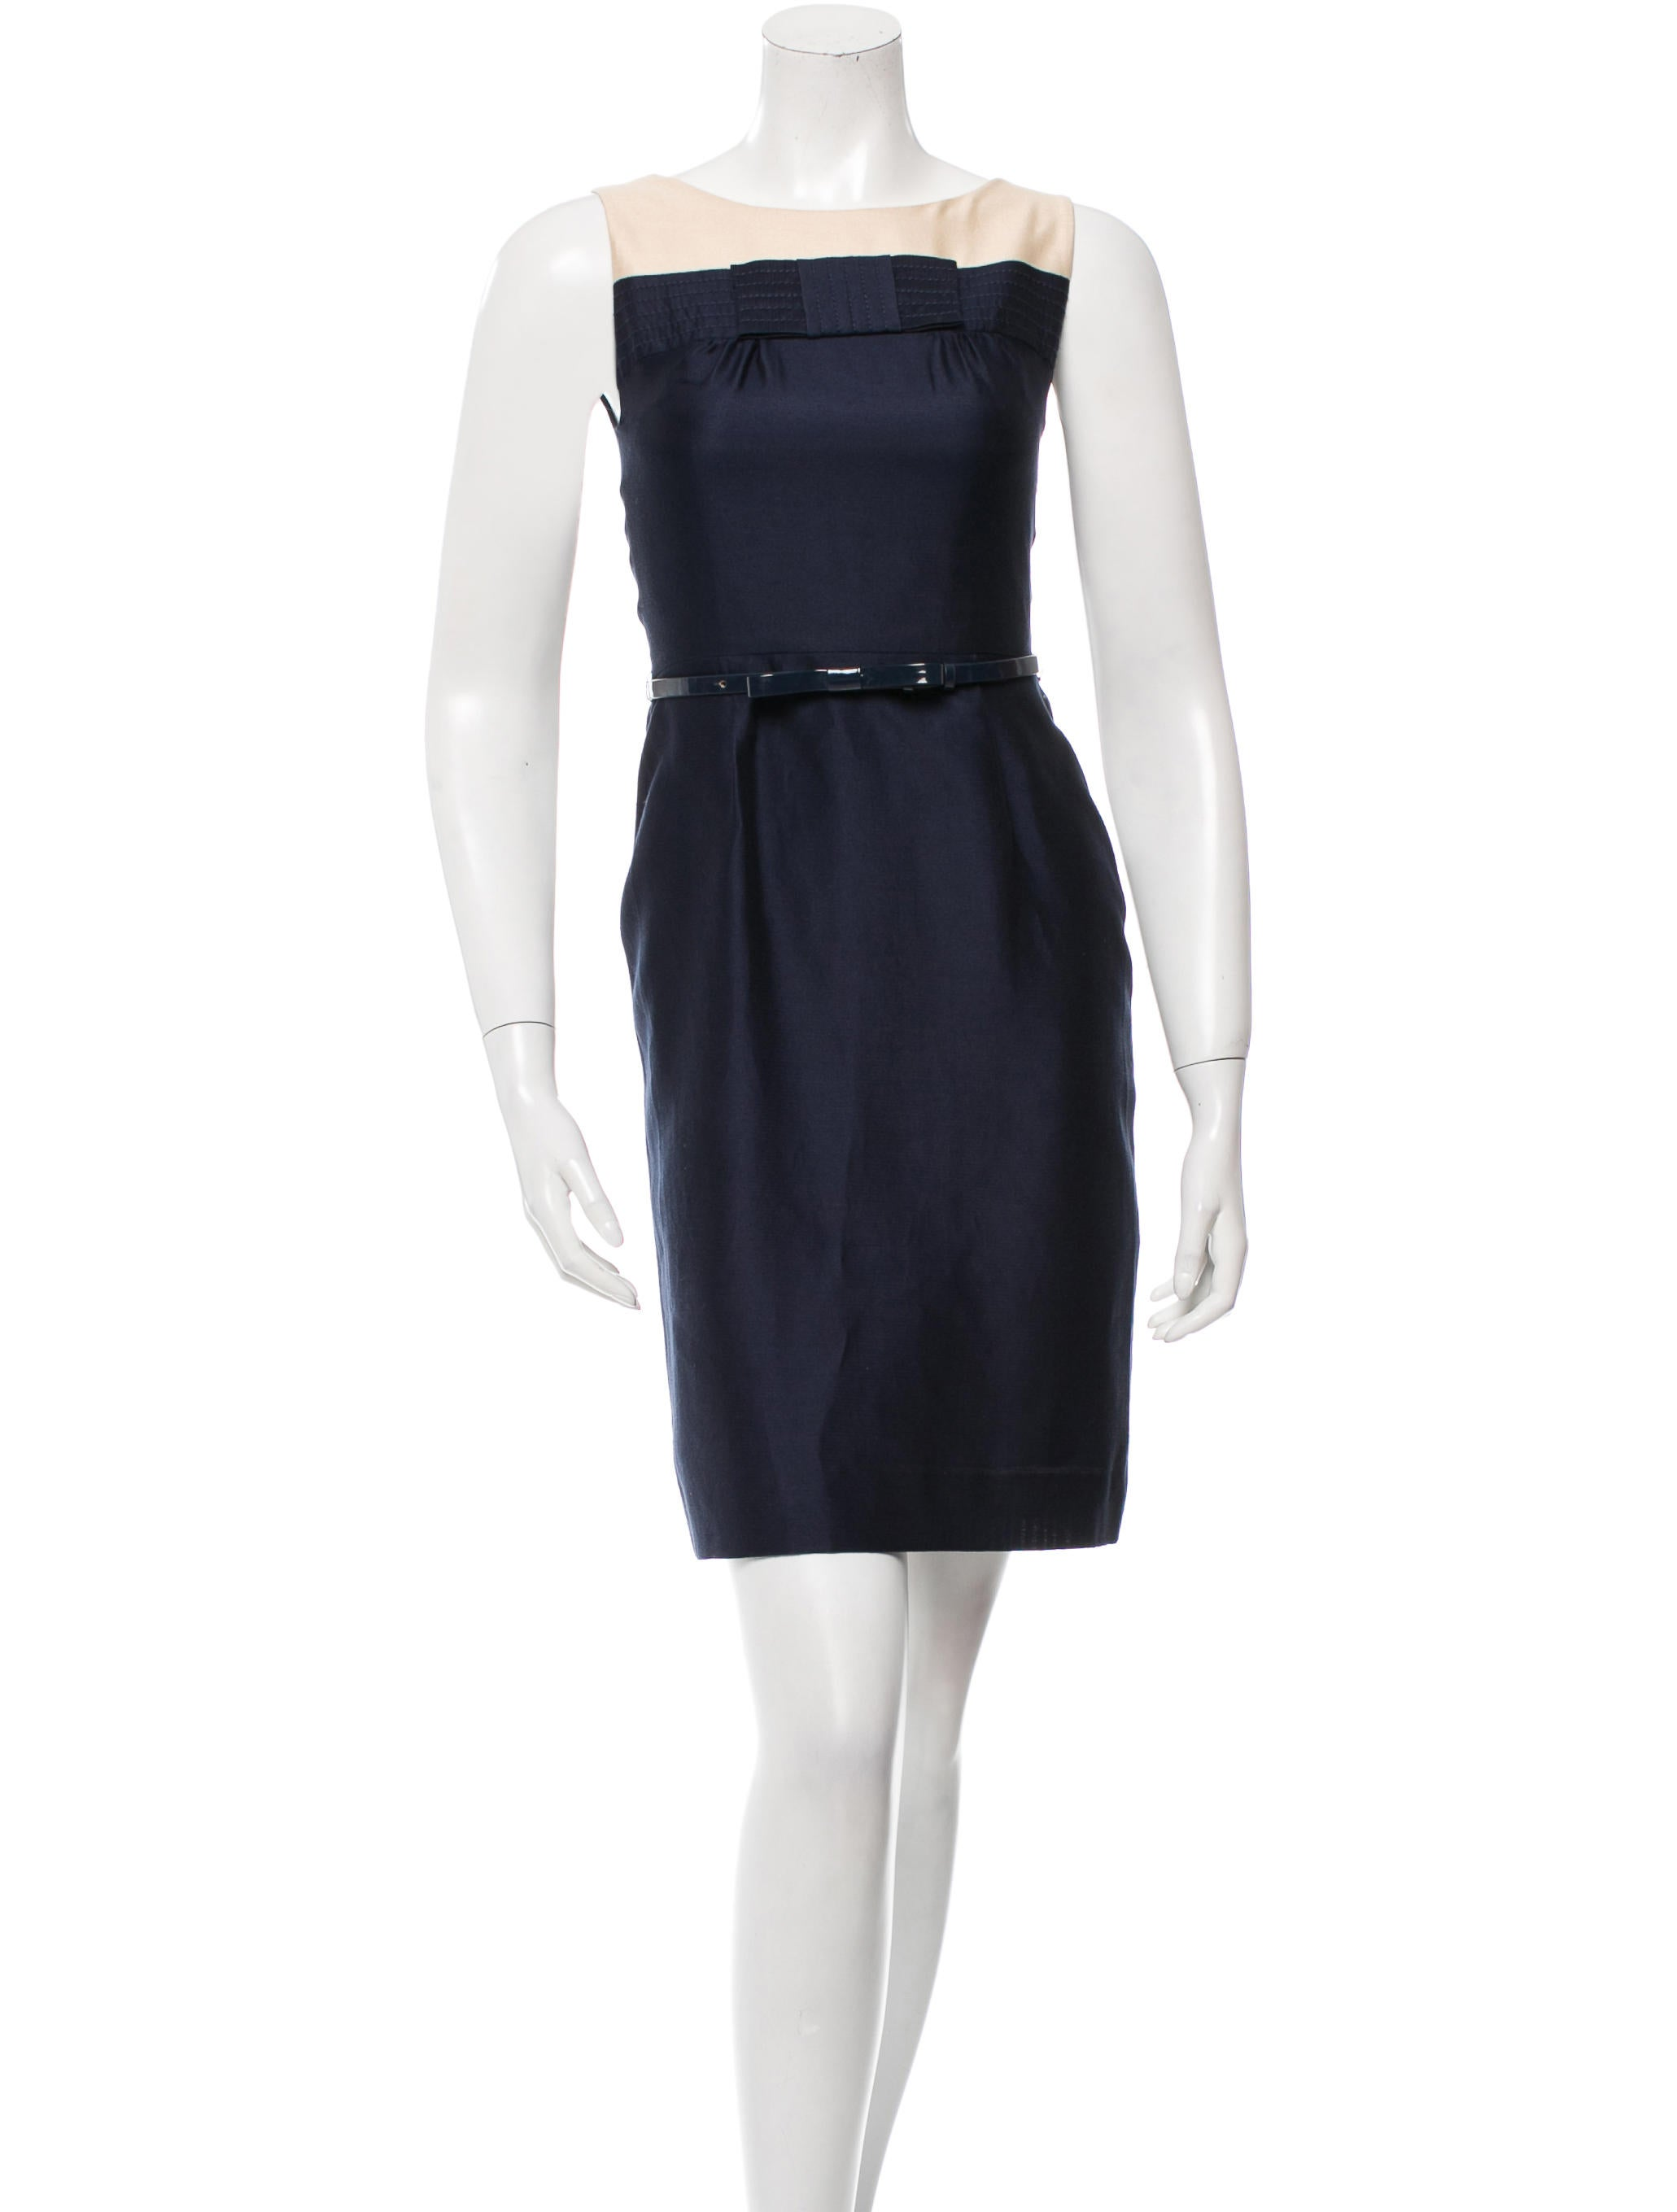 Kate Spade New York Belted Colorblock Dress Clothing